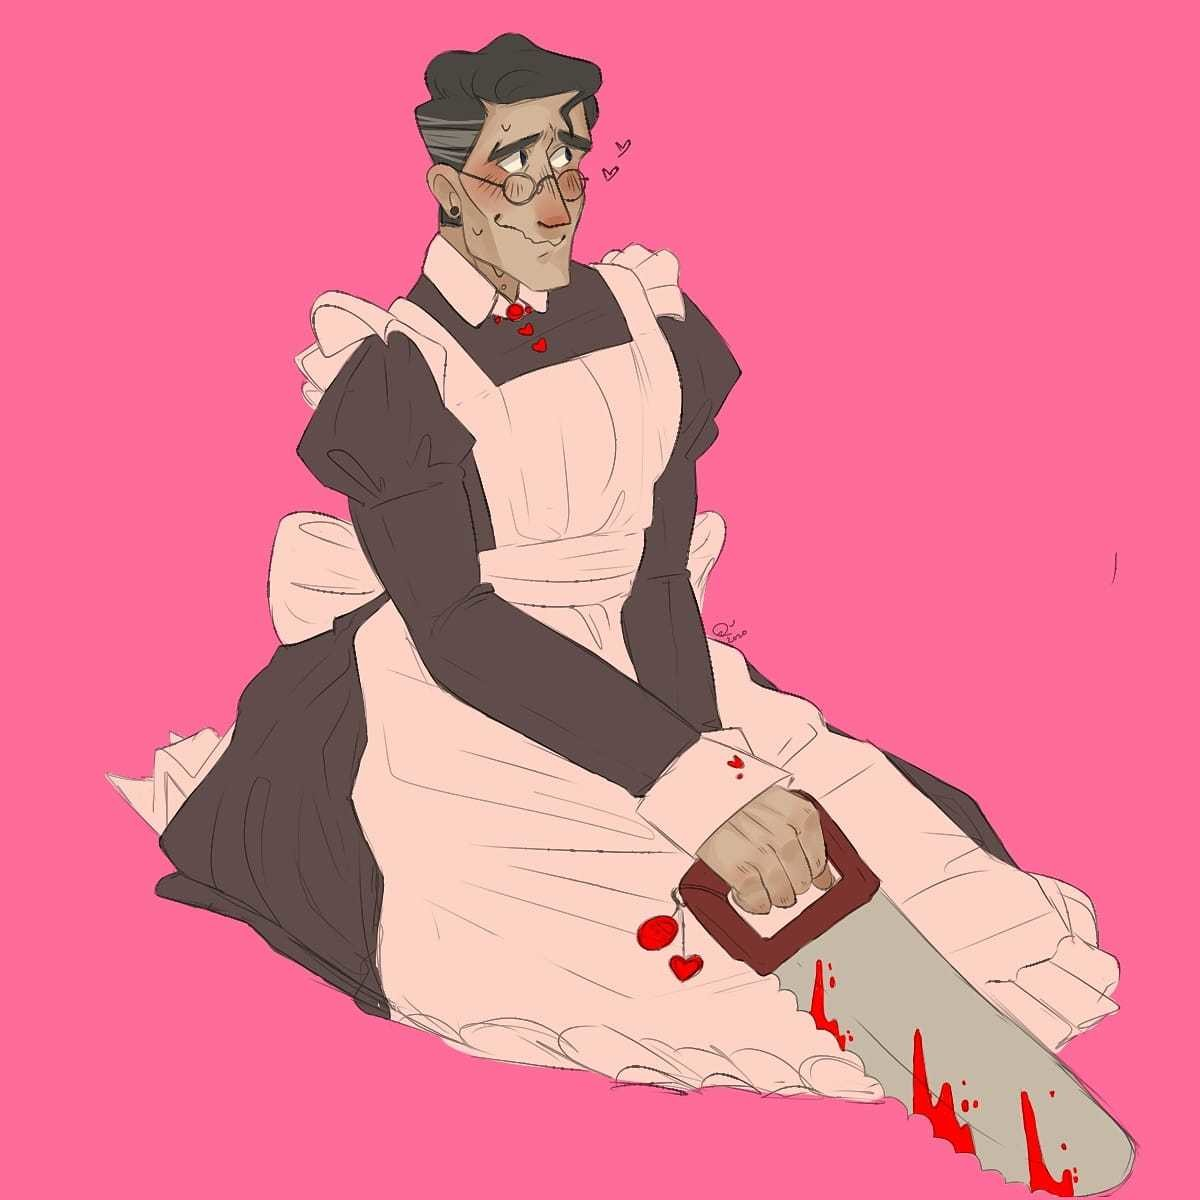 TF2 Maids. join list: SplendidServants (487 subs)Mention Clicks: 38303Msgs Sent: 917227Mention History join list:. You forgot the cringe channel